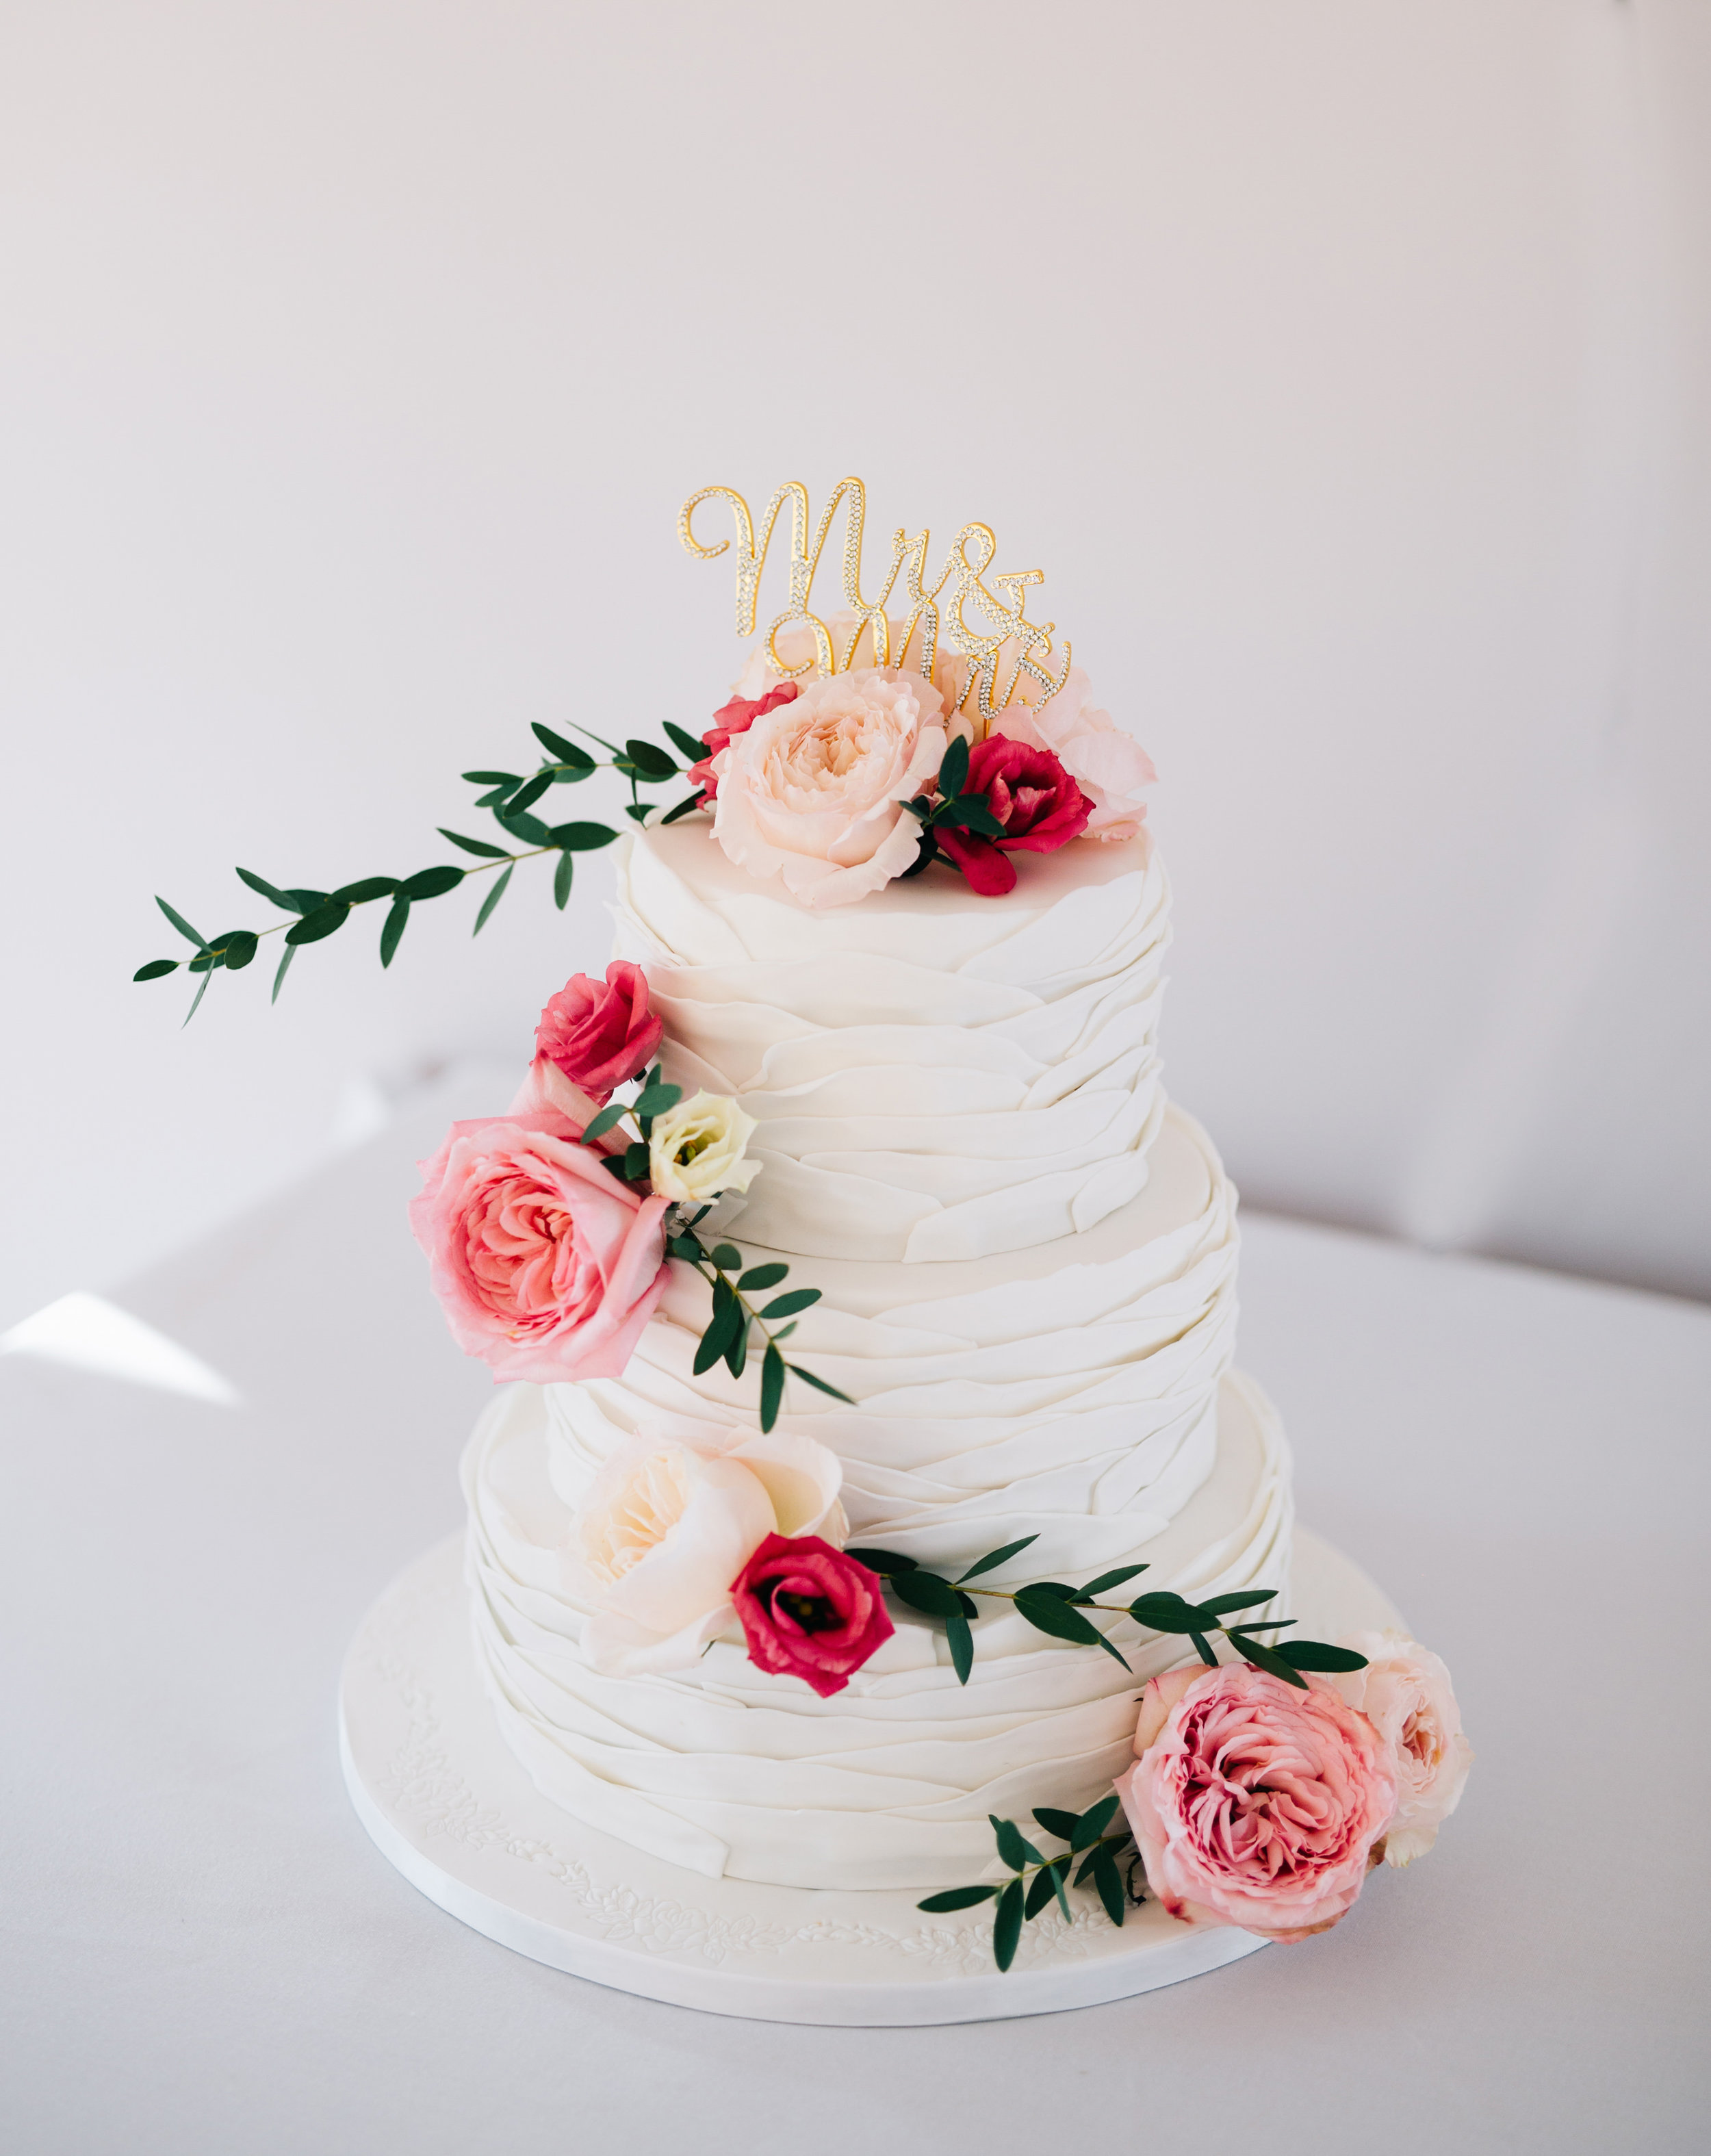 beautiful wedding cake at Fisherman's Retreat